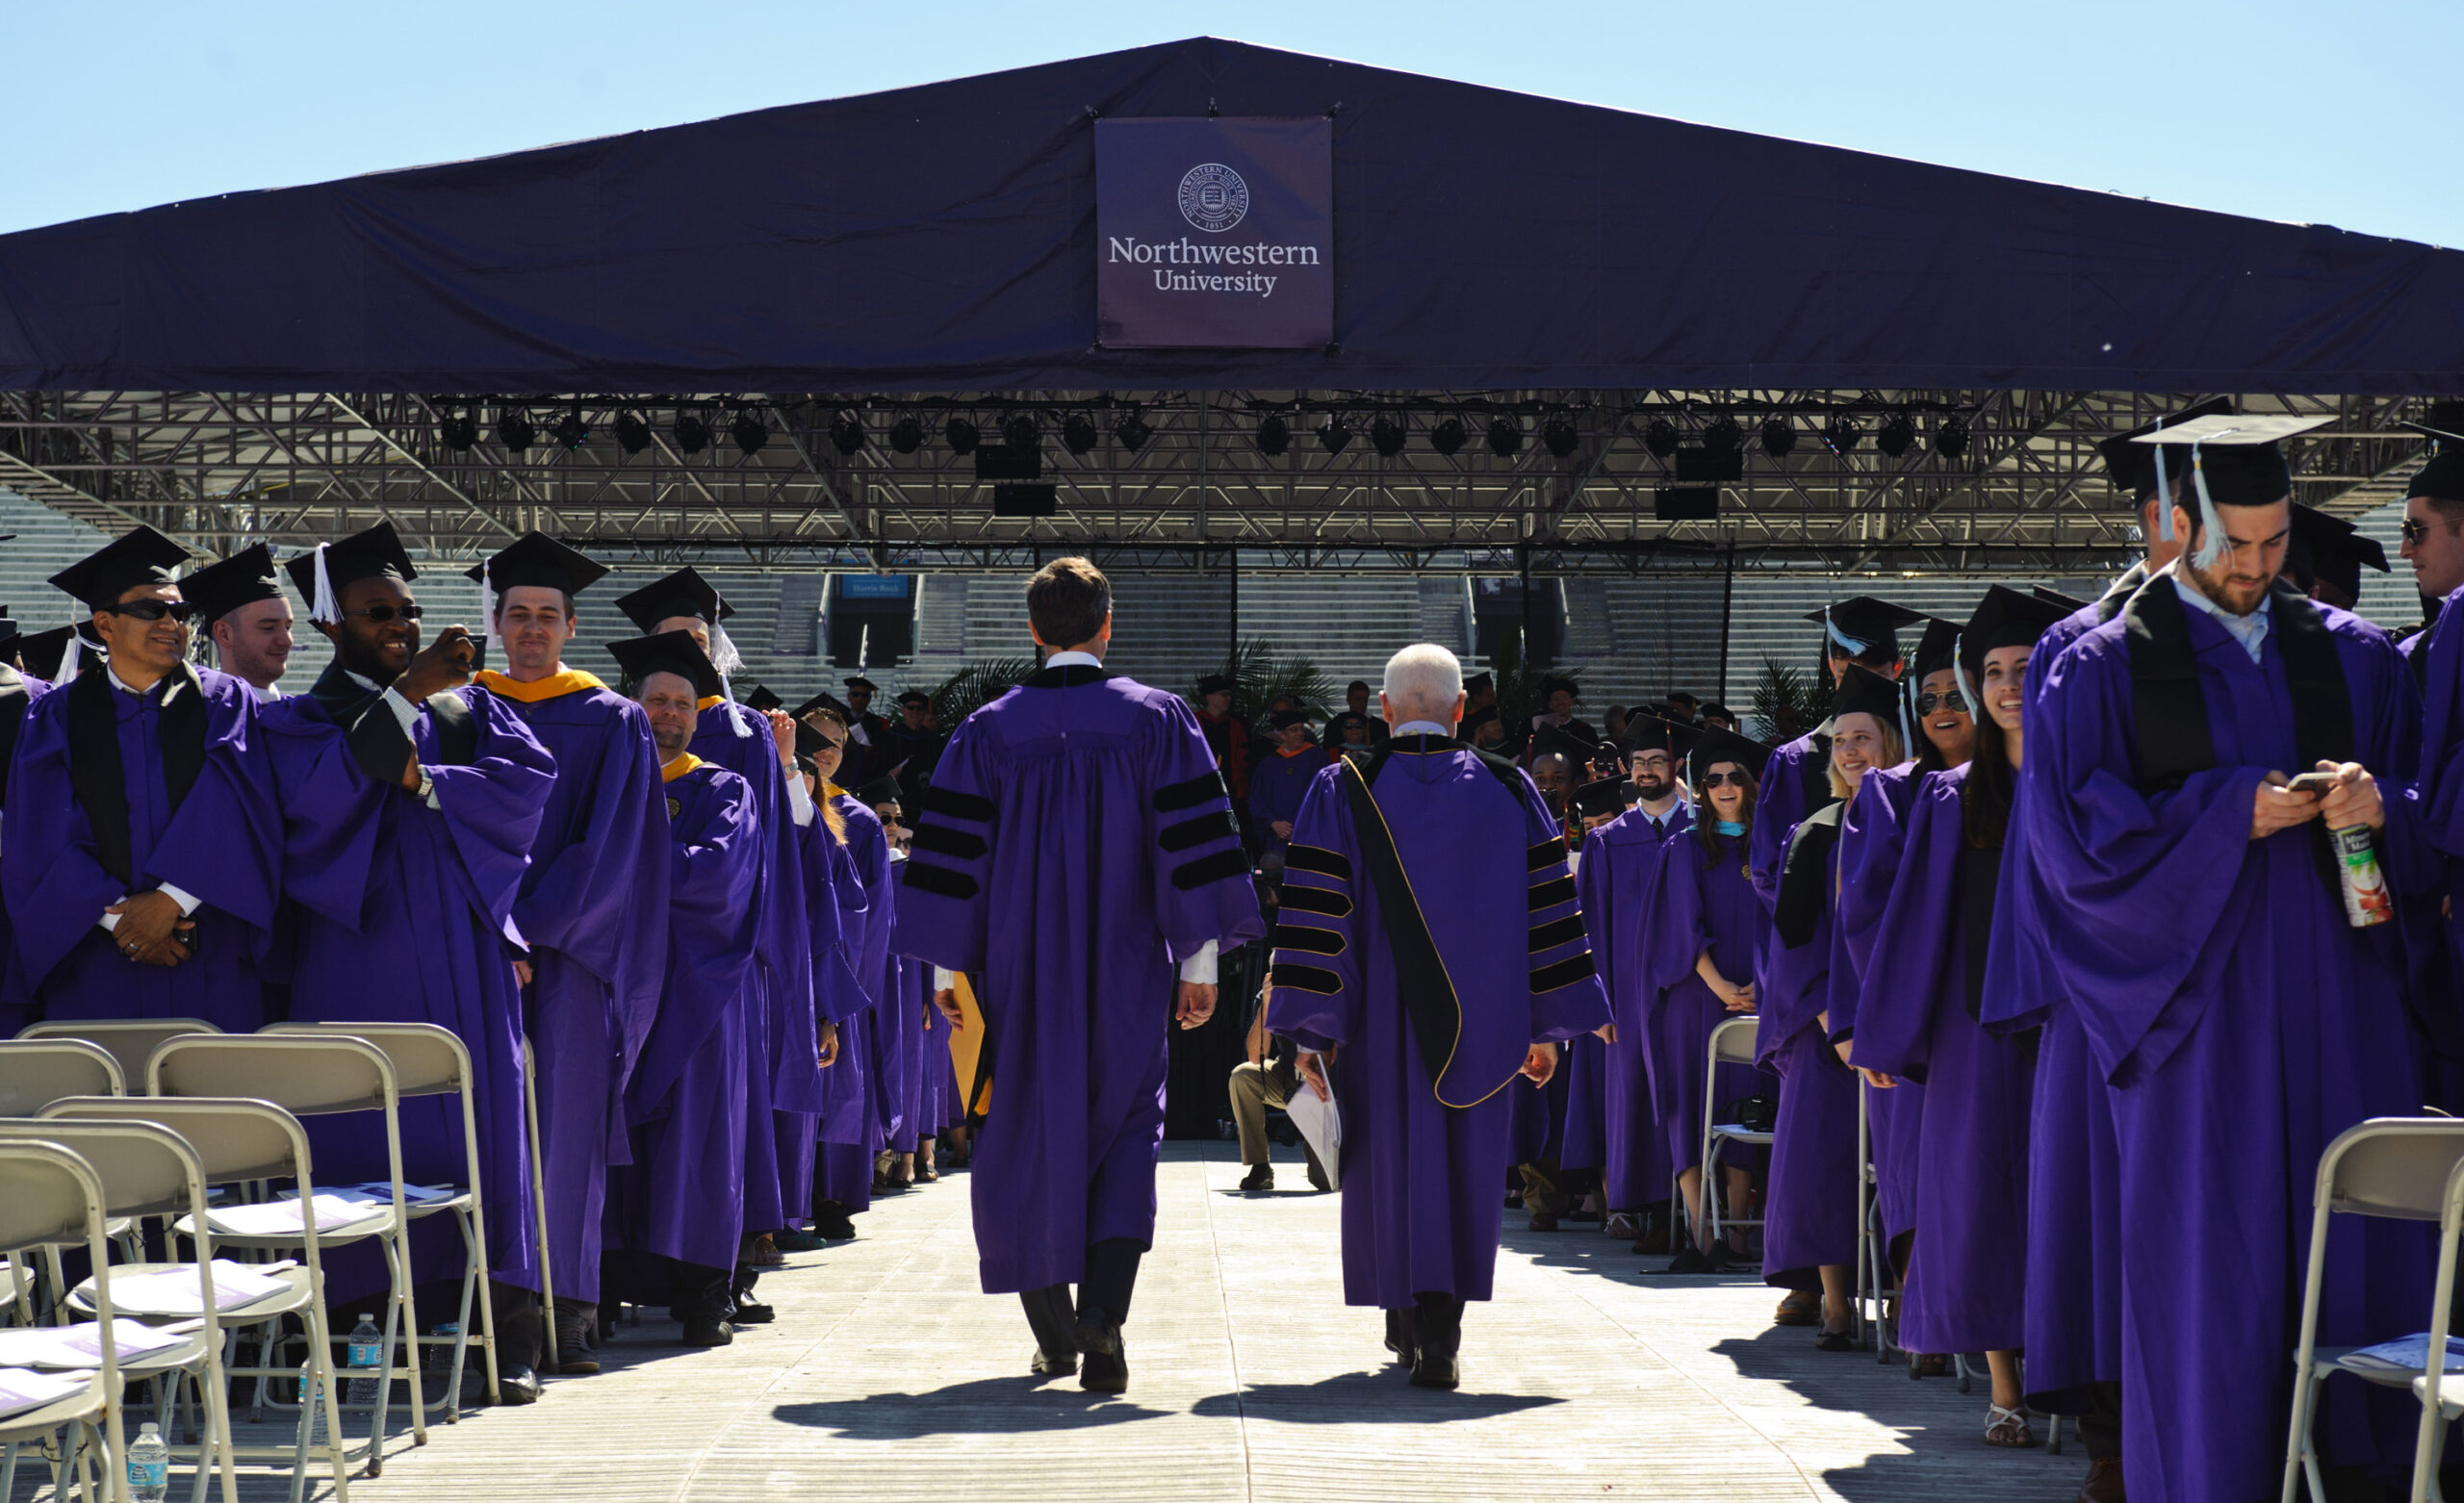 The comedian Seth Meyers (left) and Northwestern University President Morton O. Schapiro (right) at the university's 2016 commencement in Evanston, Illinois. Timothy Hiatt/Getty Images.